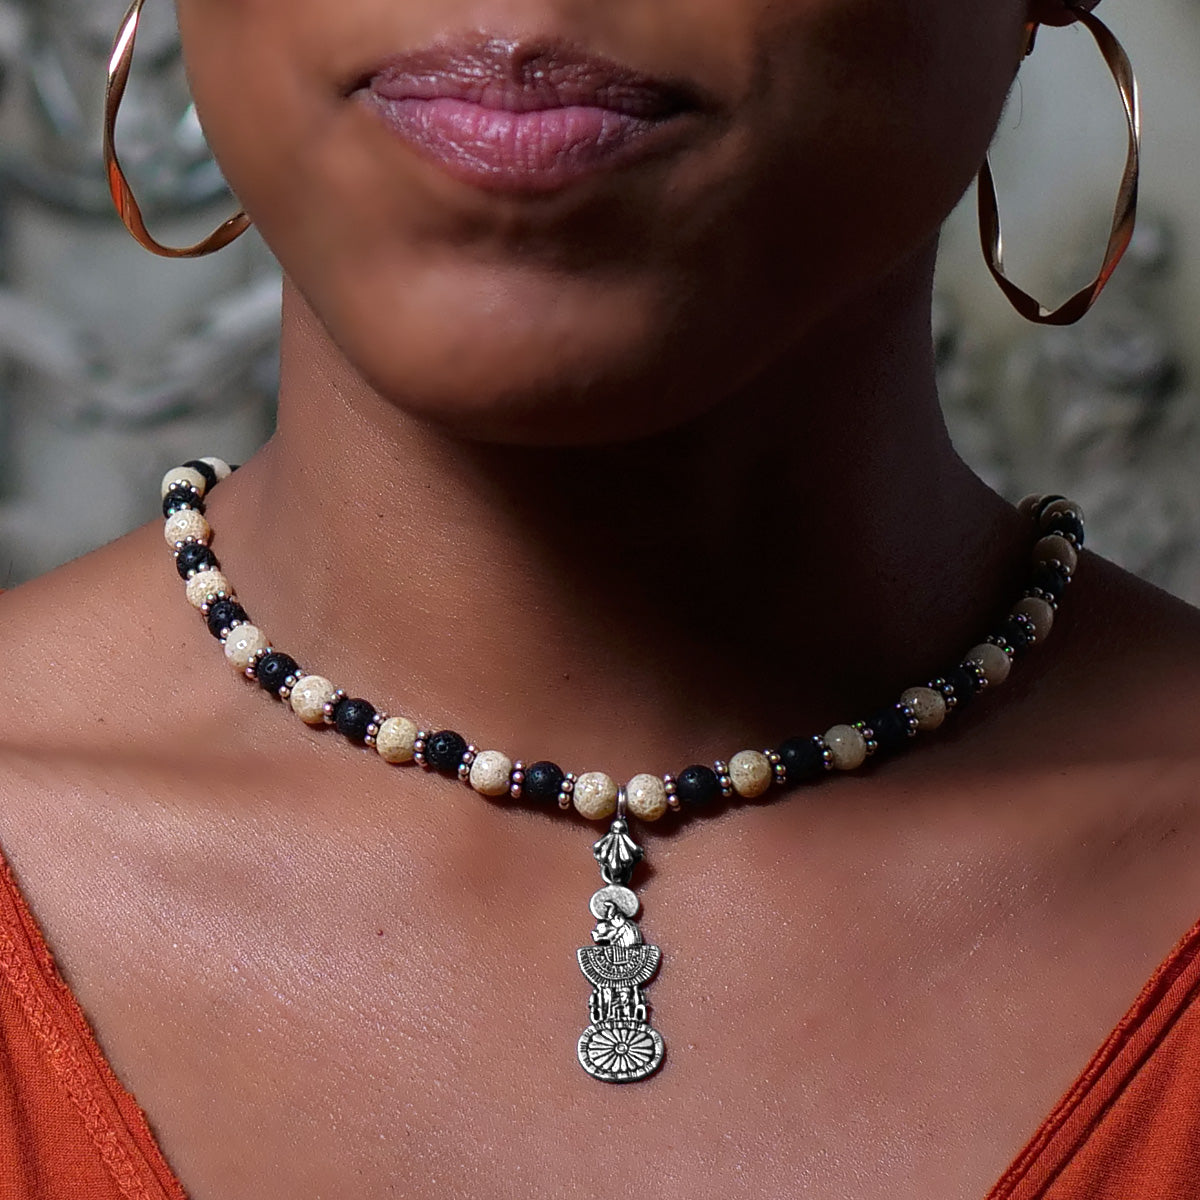 Women's Necklace in Sand Tone Faience with Matte Black Lava - Em Hotep Collection